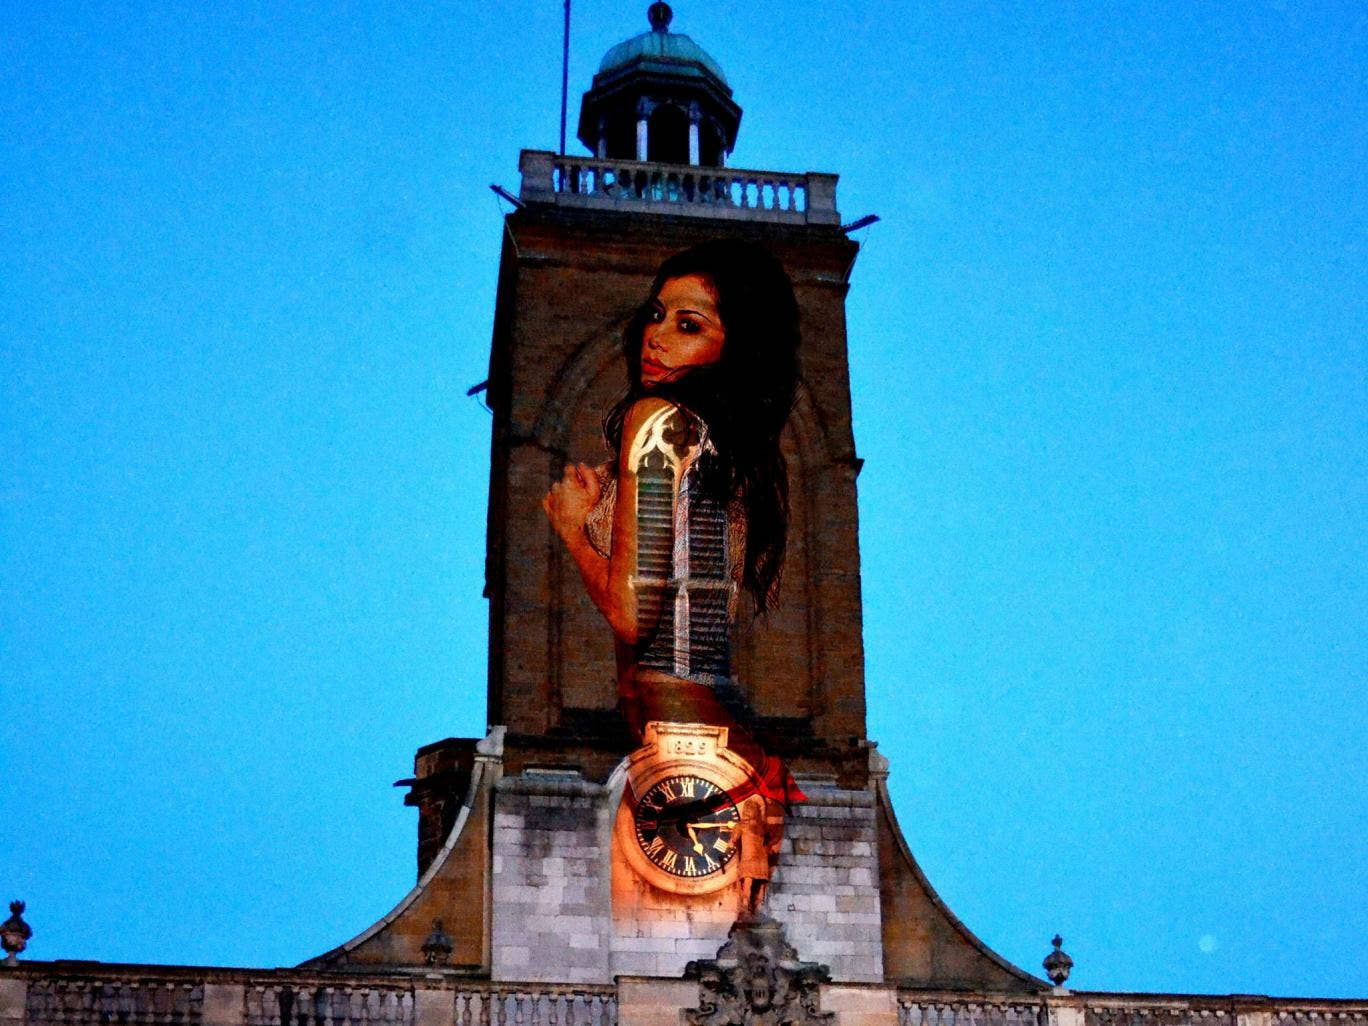 The casino which carried out the stunt said it 'meant no offence' by the promotion, which saw a 30ft semi-naked model projected onto the church tower at All Saints', Northampton